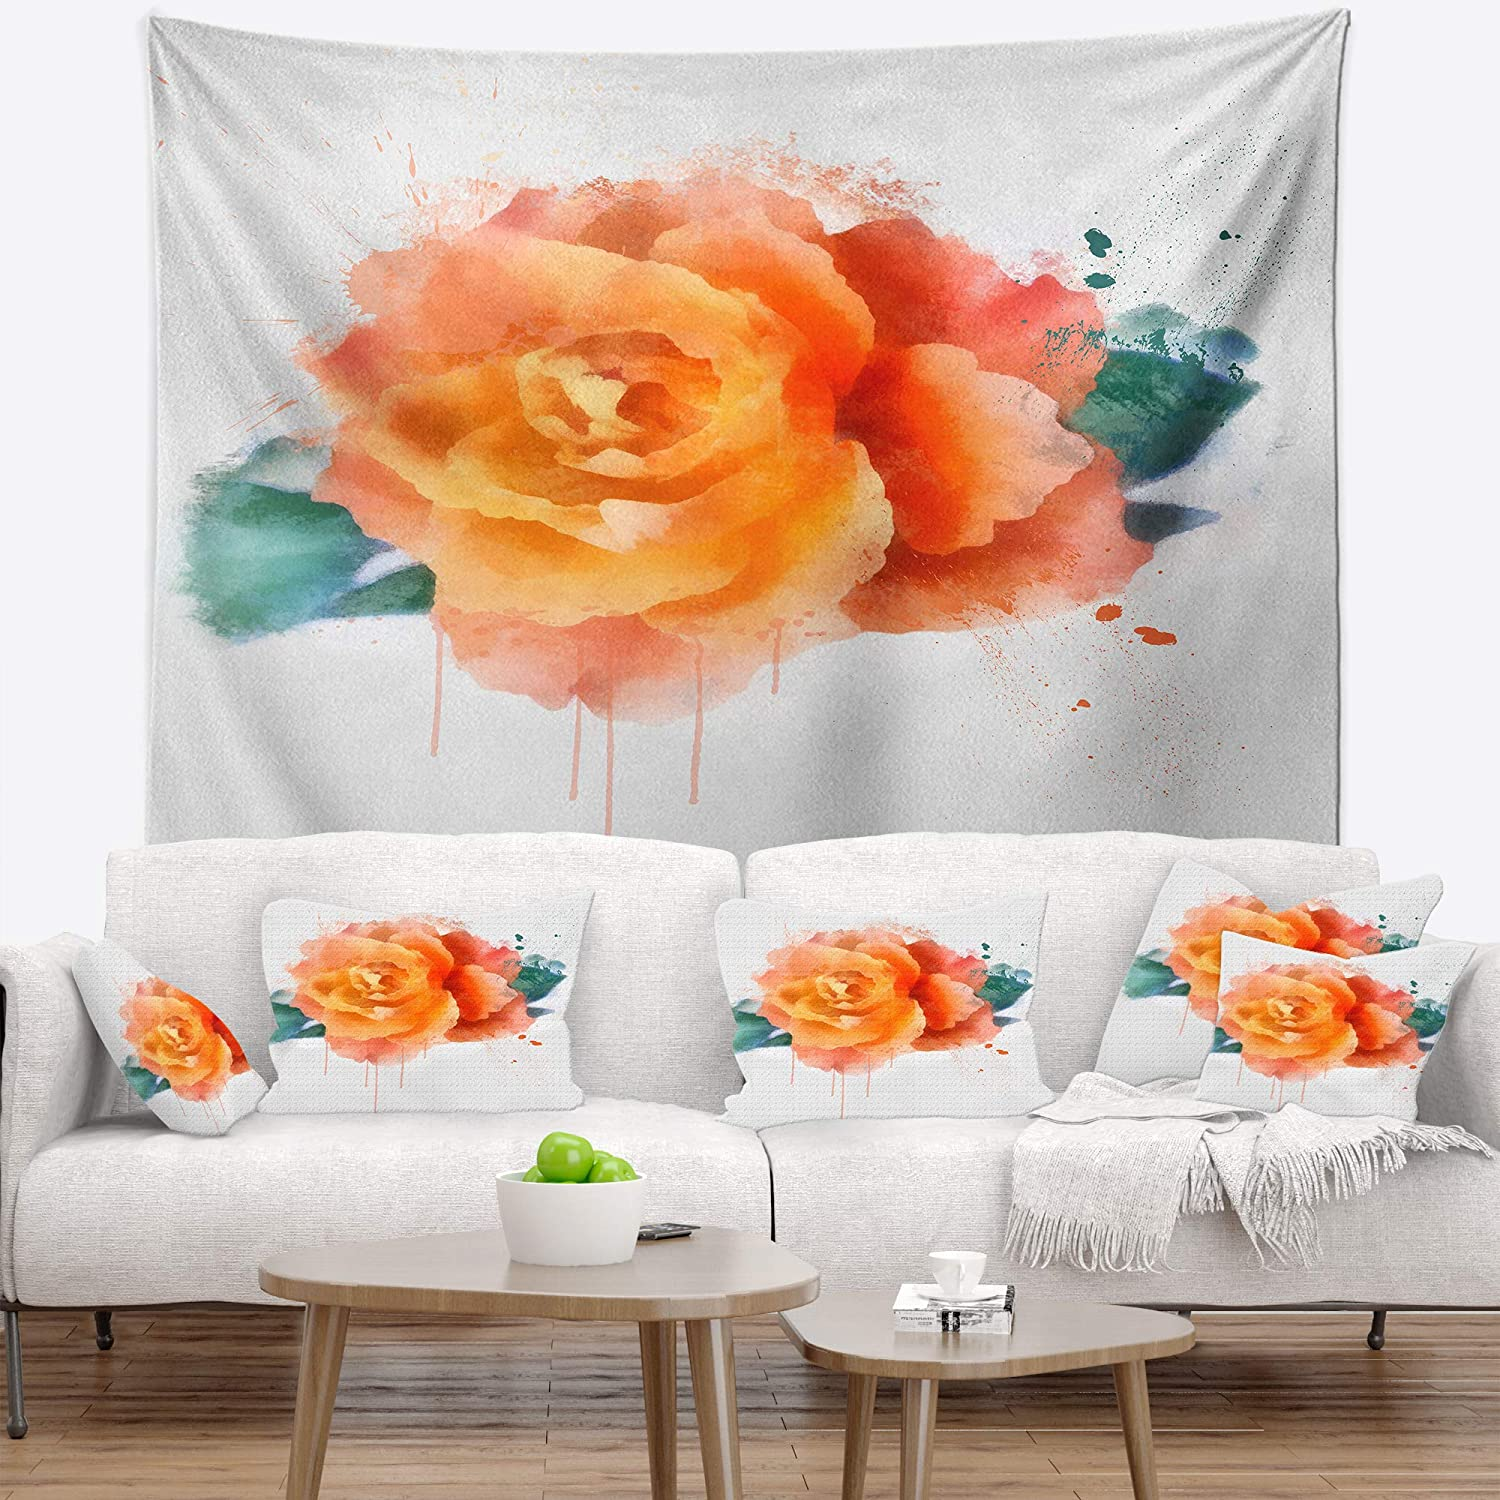 Designart TAP13640-32-39 ' Orange Rose with Green Leaves' Floral Blanket Décor Art for Home and Office Wall Tapestry Medium: 32 in. x 39 in. Created On Lightweight Polyester Fabric